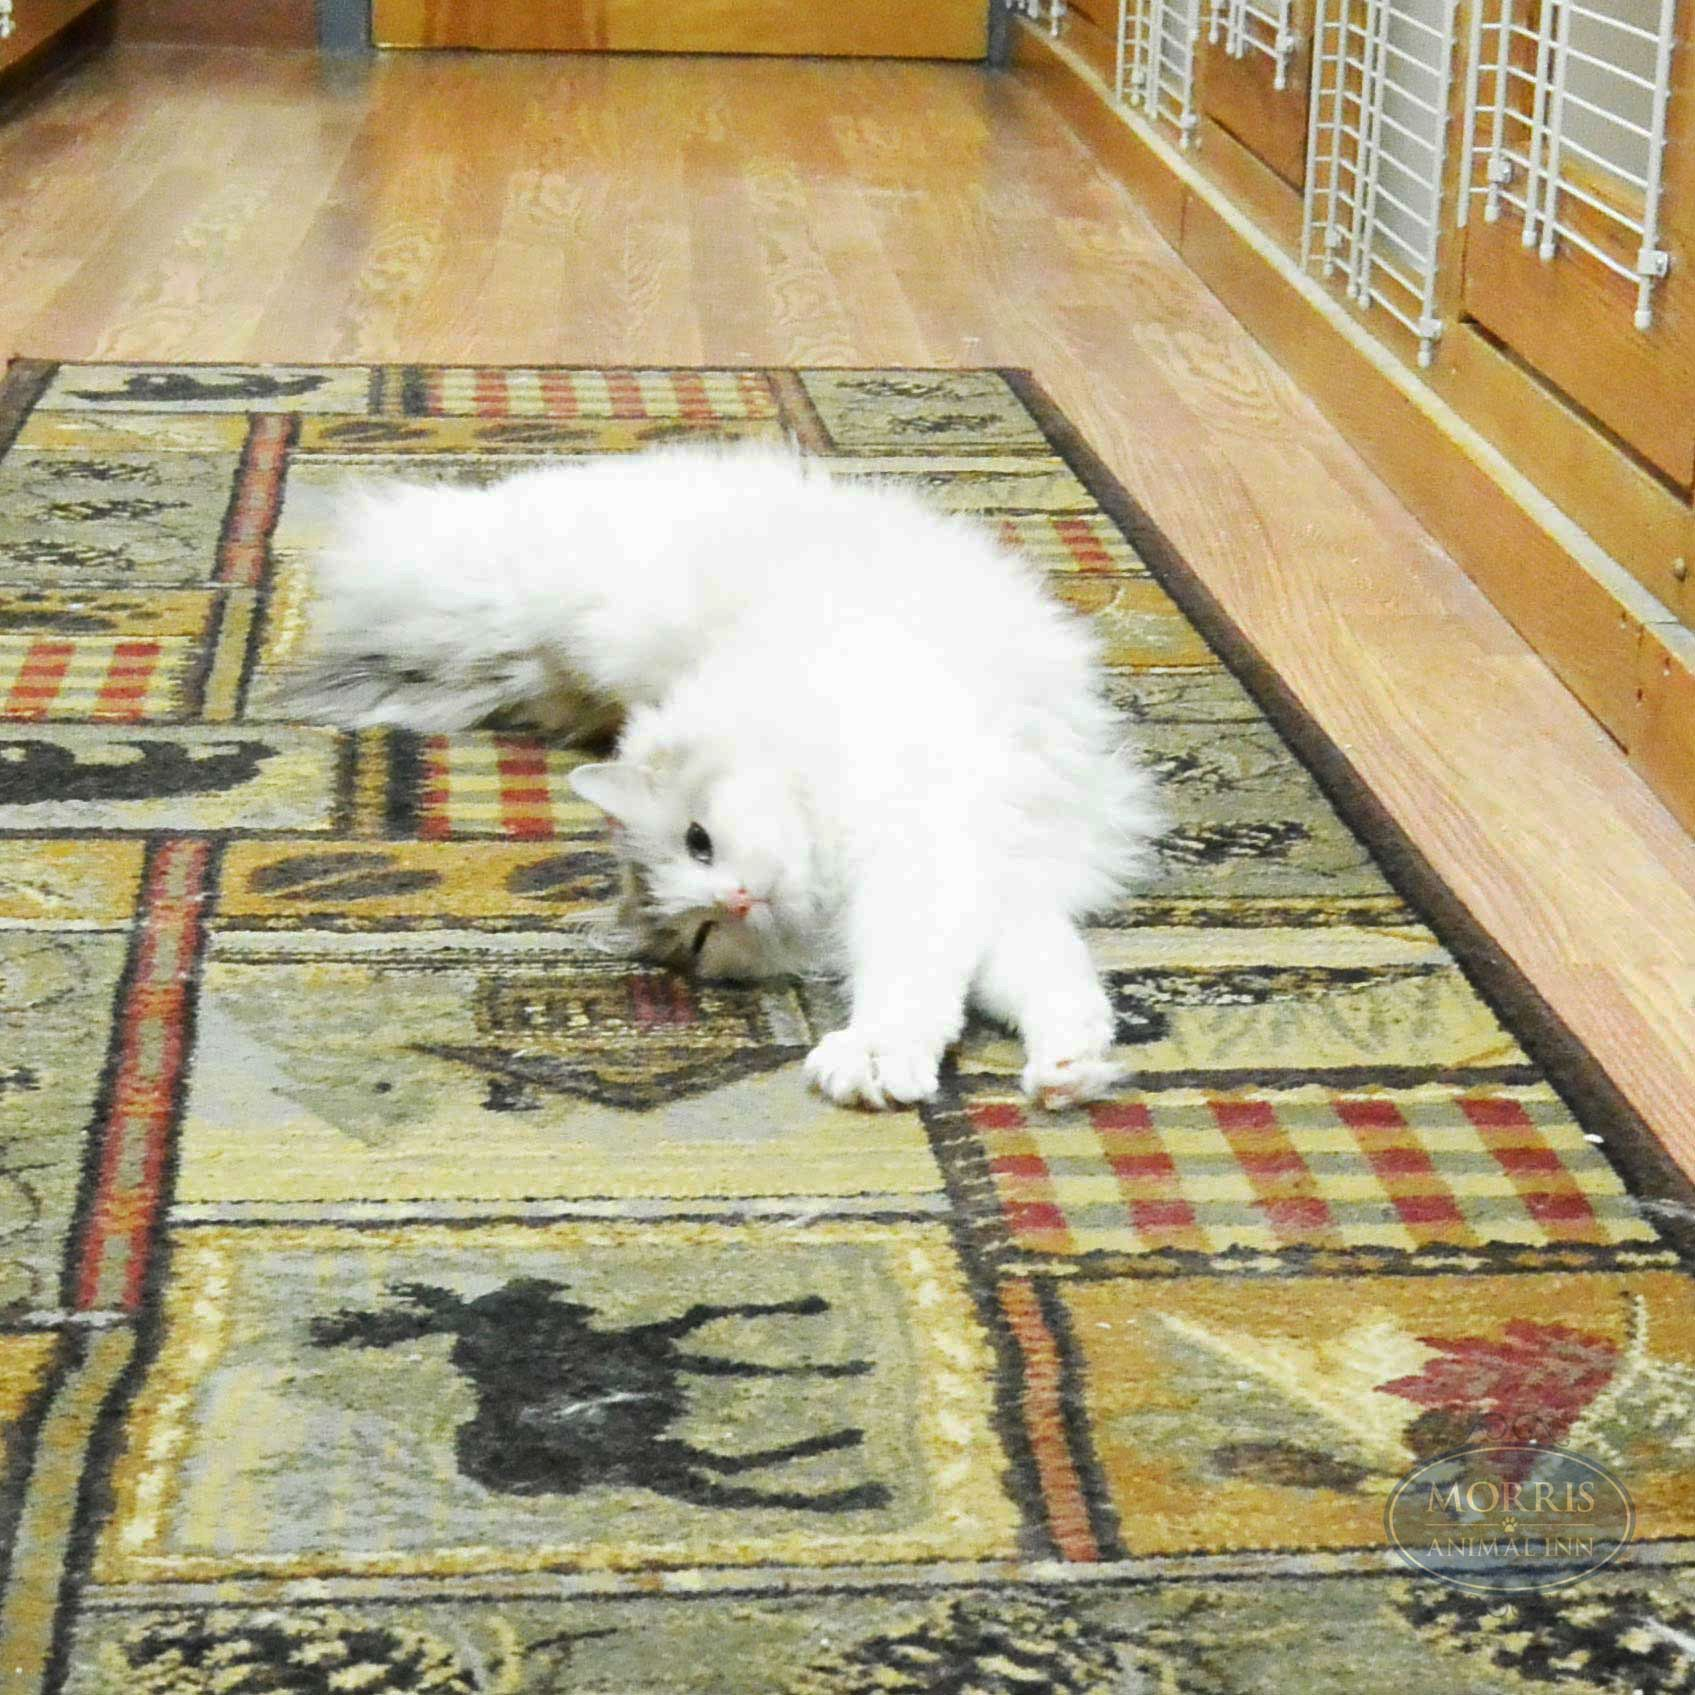 Seven Year Old Ragdoll Misha Gets A Good Stretch In While Exploring The Cattery Morrisanimalinn Cats Welovecats Ragdoll Dog Daycare Pet Boarding Pet Hotel